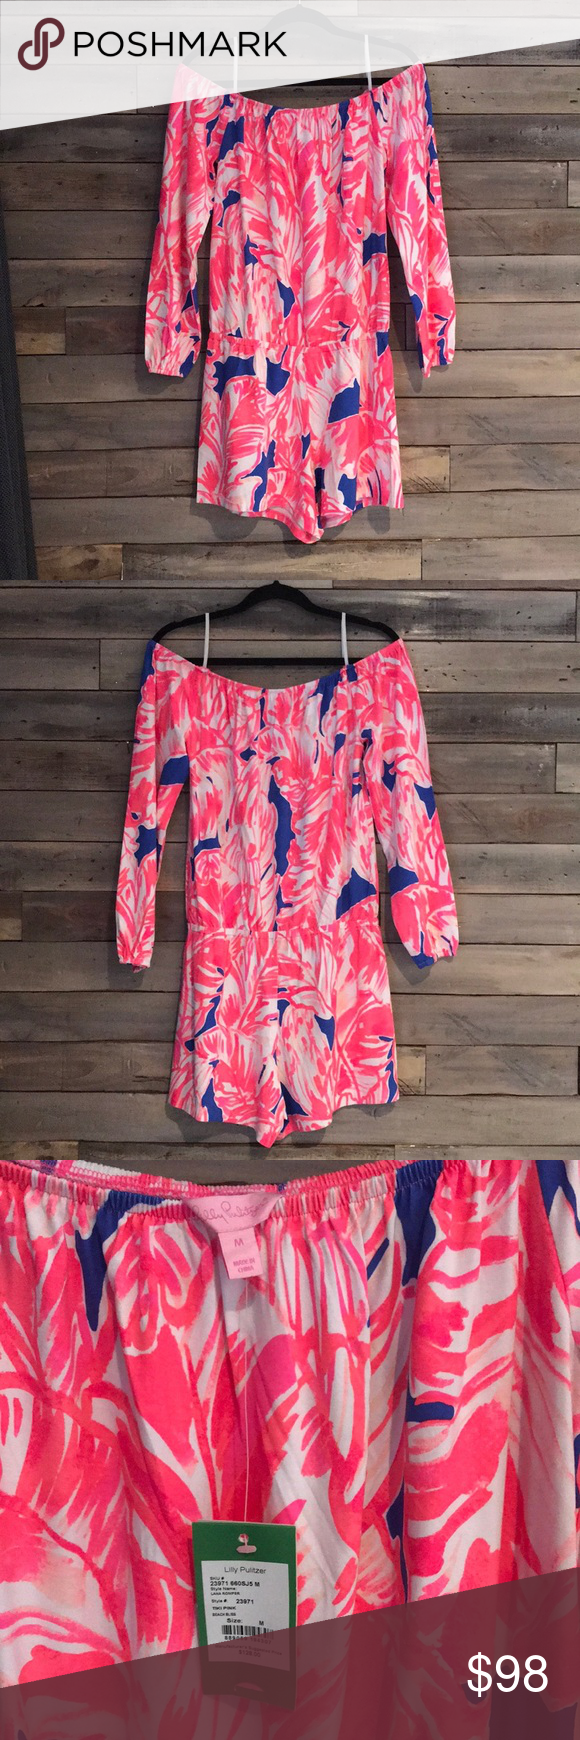 34cbaef878b0 Lilly Pulitzer Lana Romper NWT Brand new with tags still on. Strapless. Lana  Romper on pattern Tiki Pink Beach Bliss. Nonsmoking home. Lilly Pulitzer  Pants ...